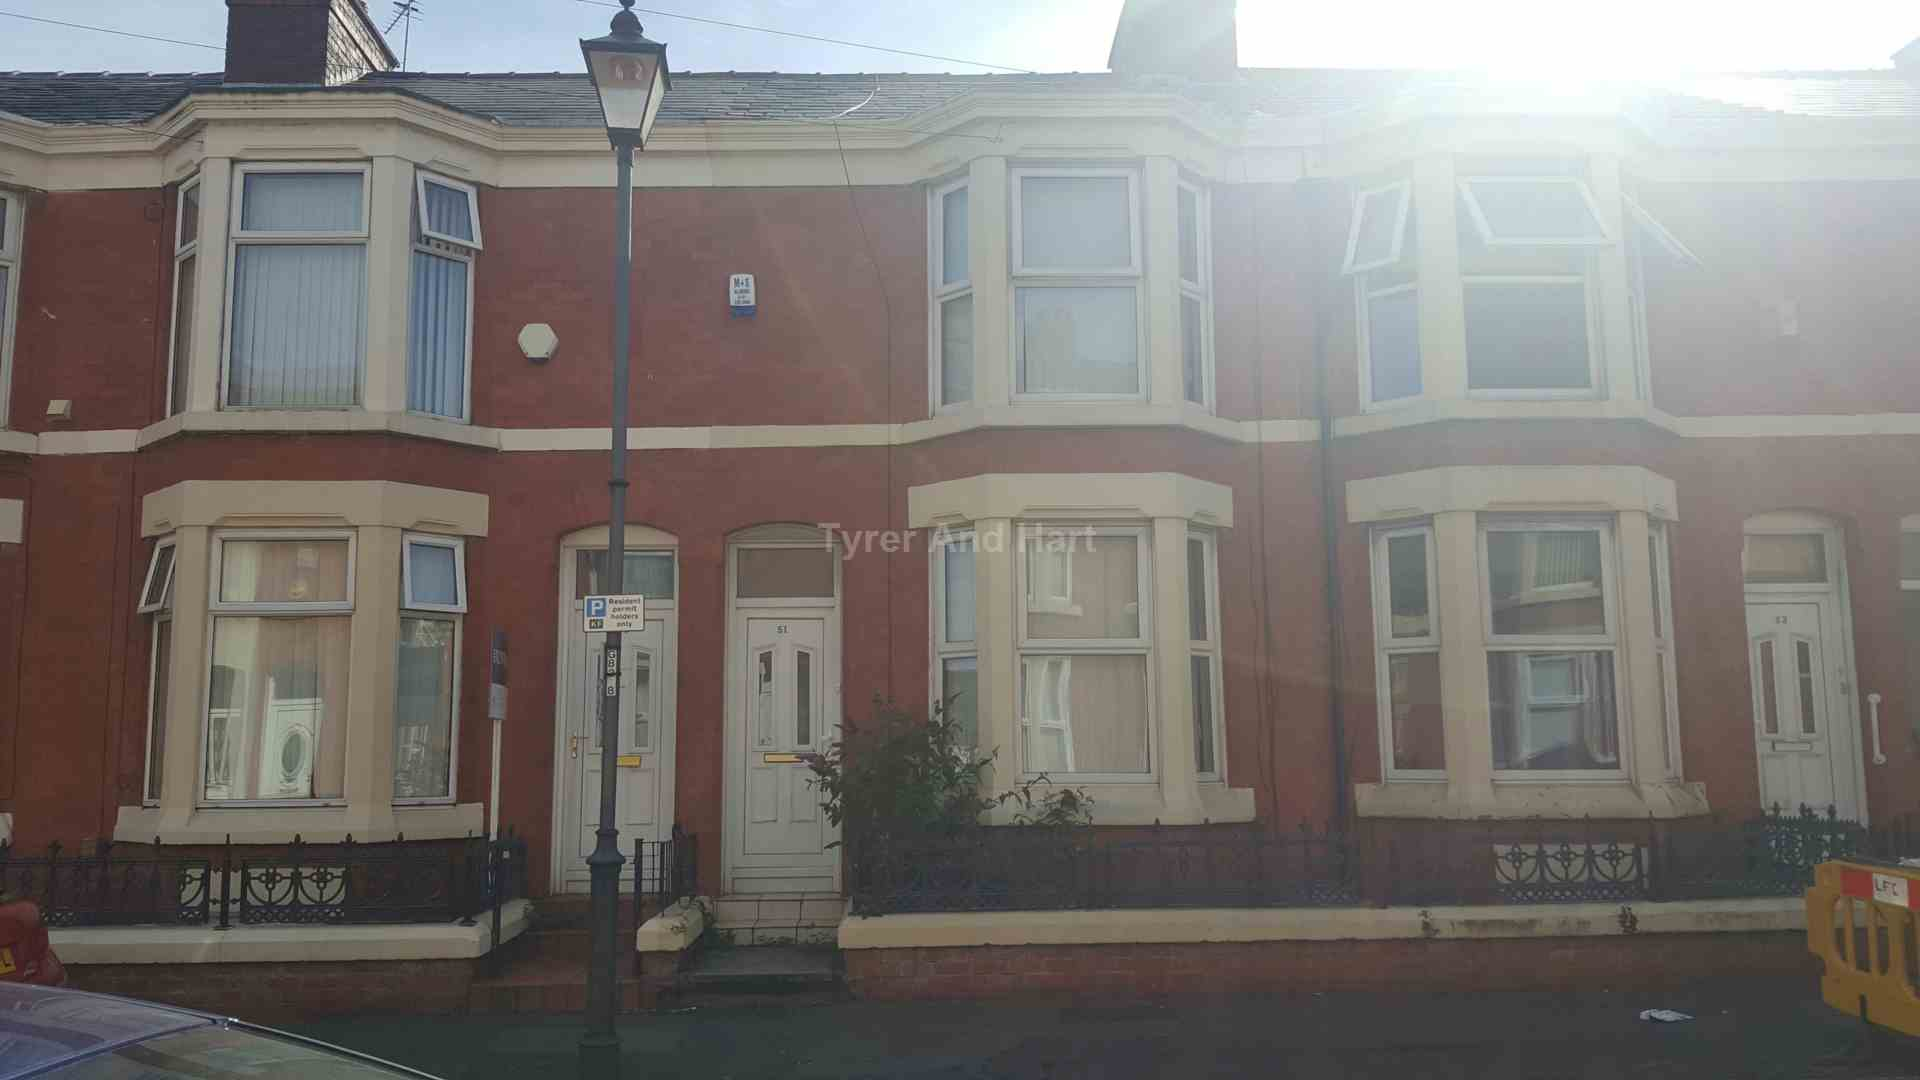 Adelaide Road, Liverpool, Image 2